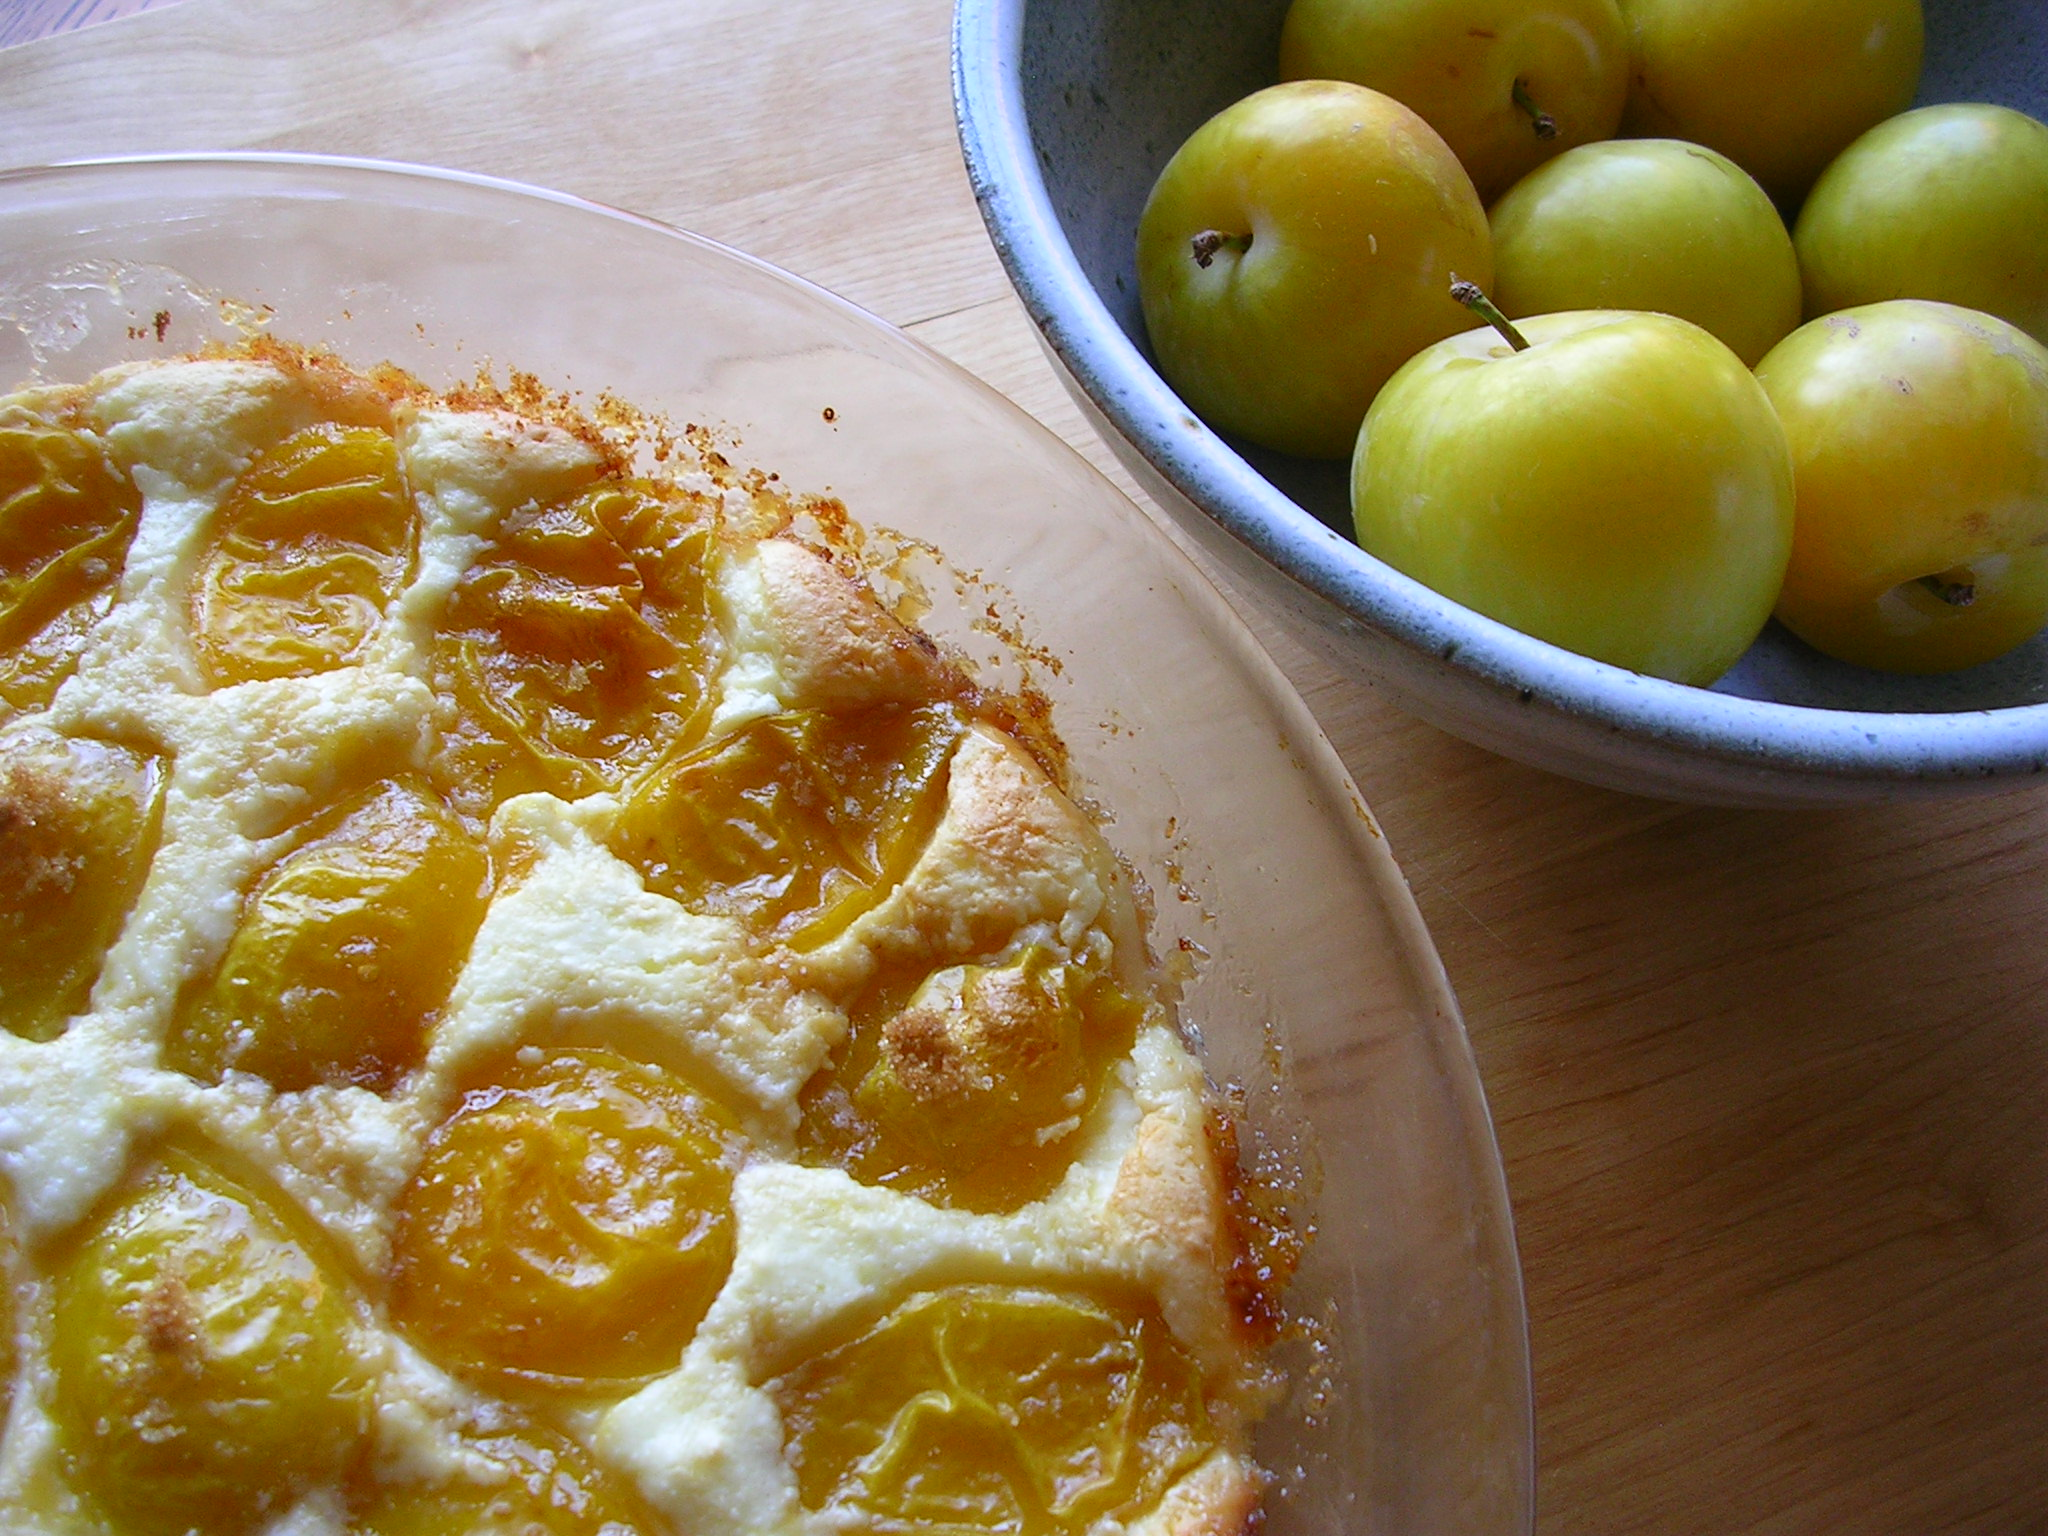 Crustless Ricotta Pie with Yellow Plums